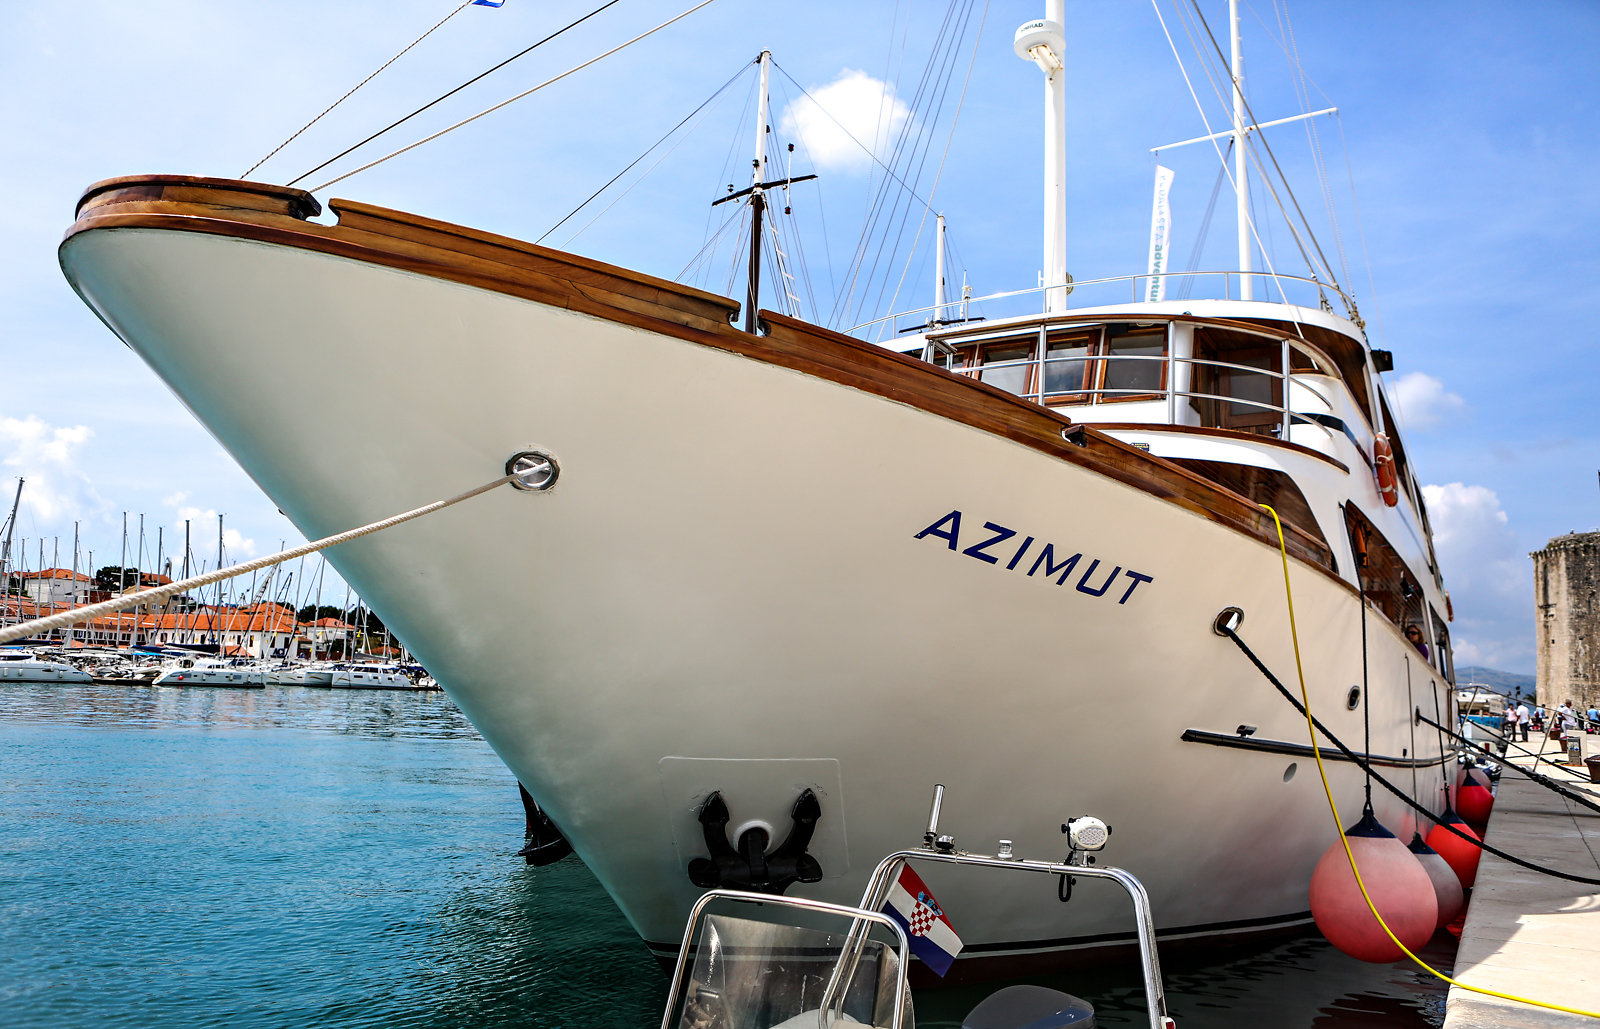 Croatia Azimut bike and boat tour